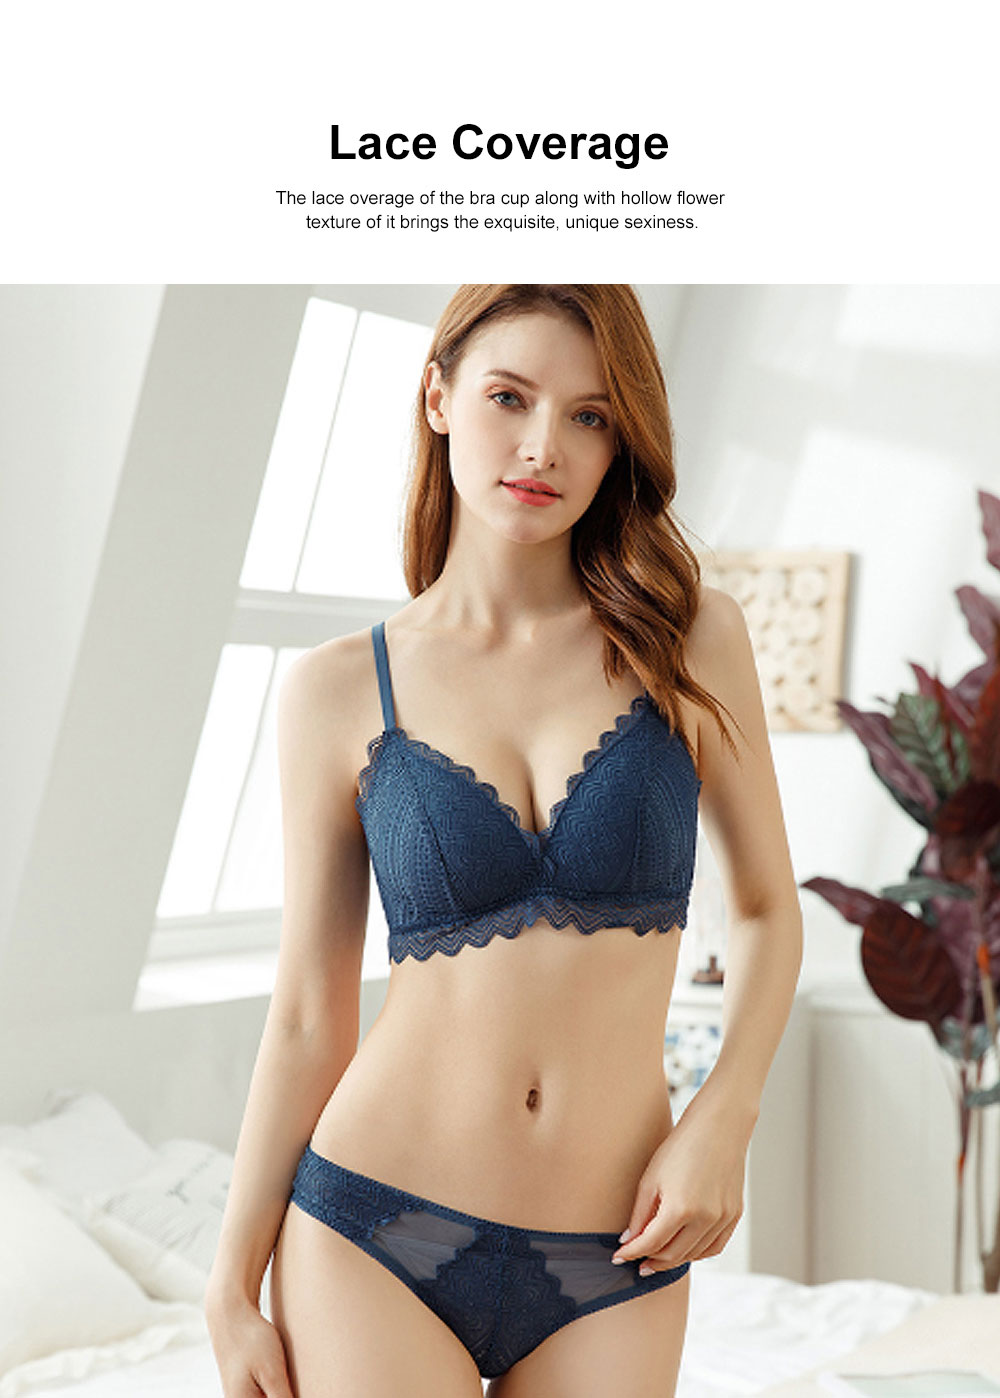 Triangular Cup Women Underwear French Style Thin Cotton Bra Set Without Steel Rims for Lady Comfortable Sexy Lace Brassiere 2